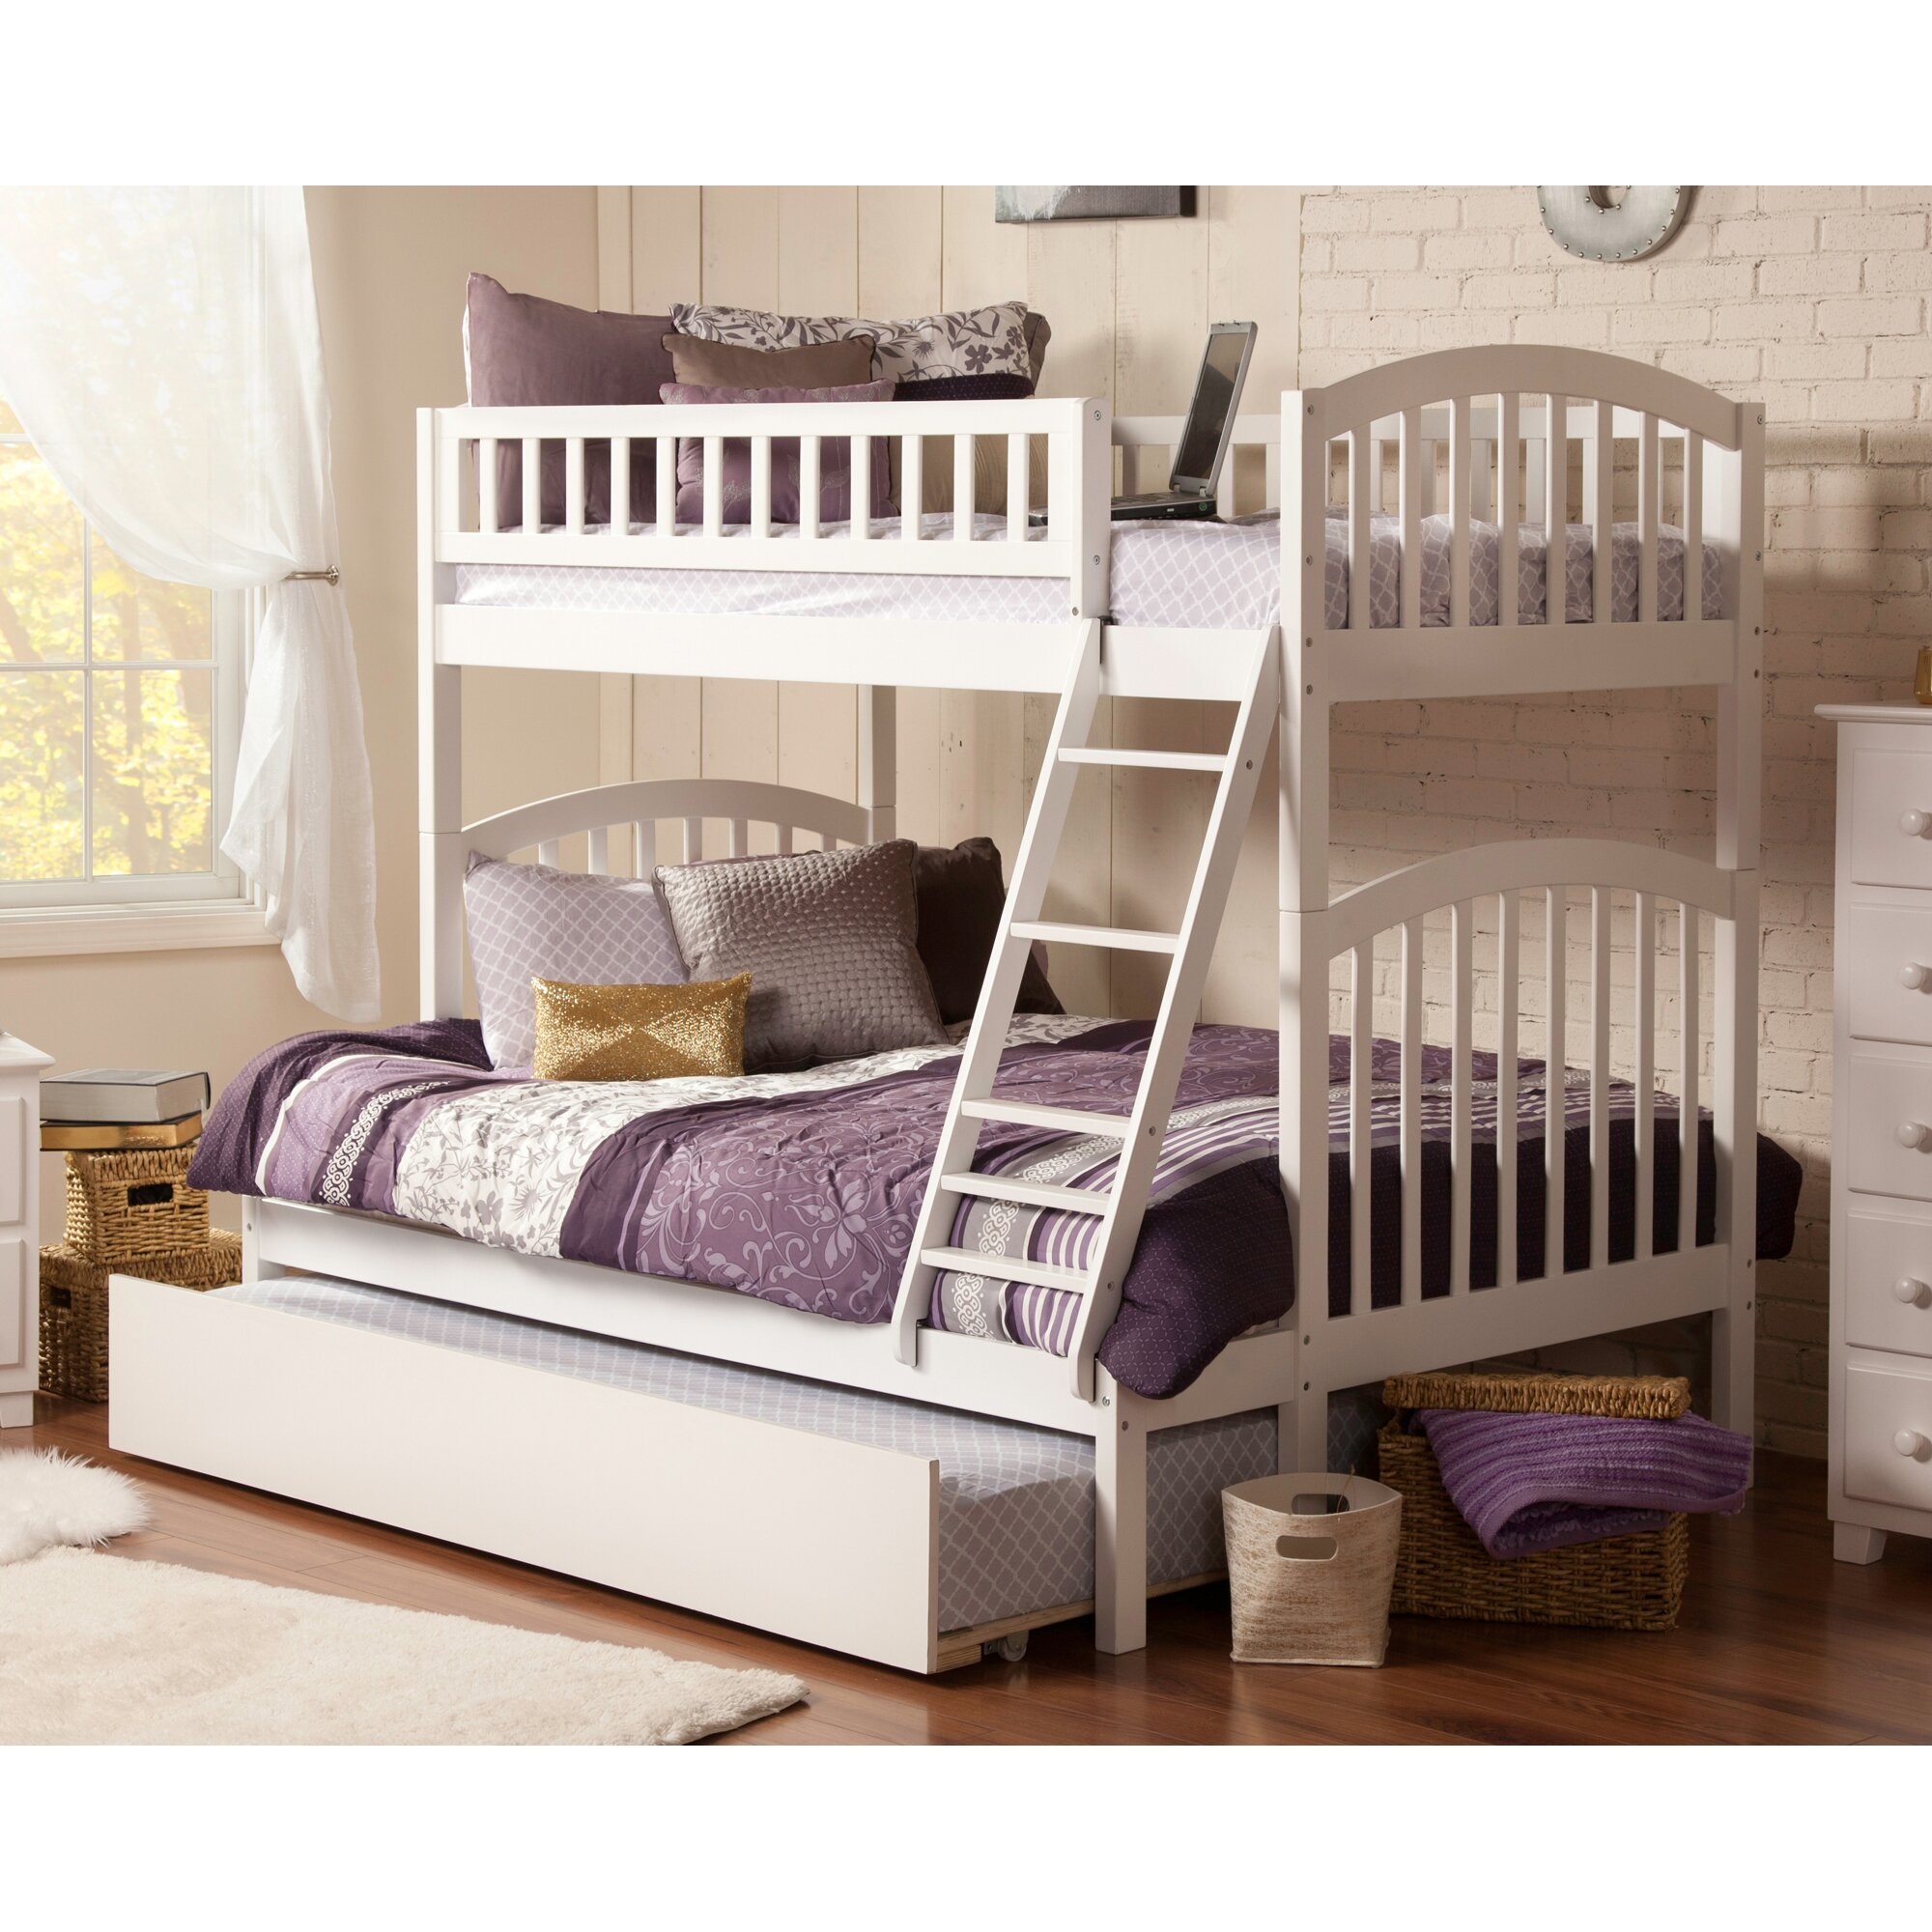 atlantic furniture richland twin over full bunk bed reviews wayfair. Black Bedroom Furniture Sets. Home Design Ideas